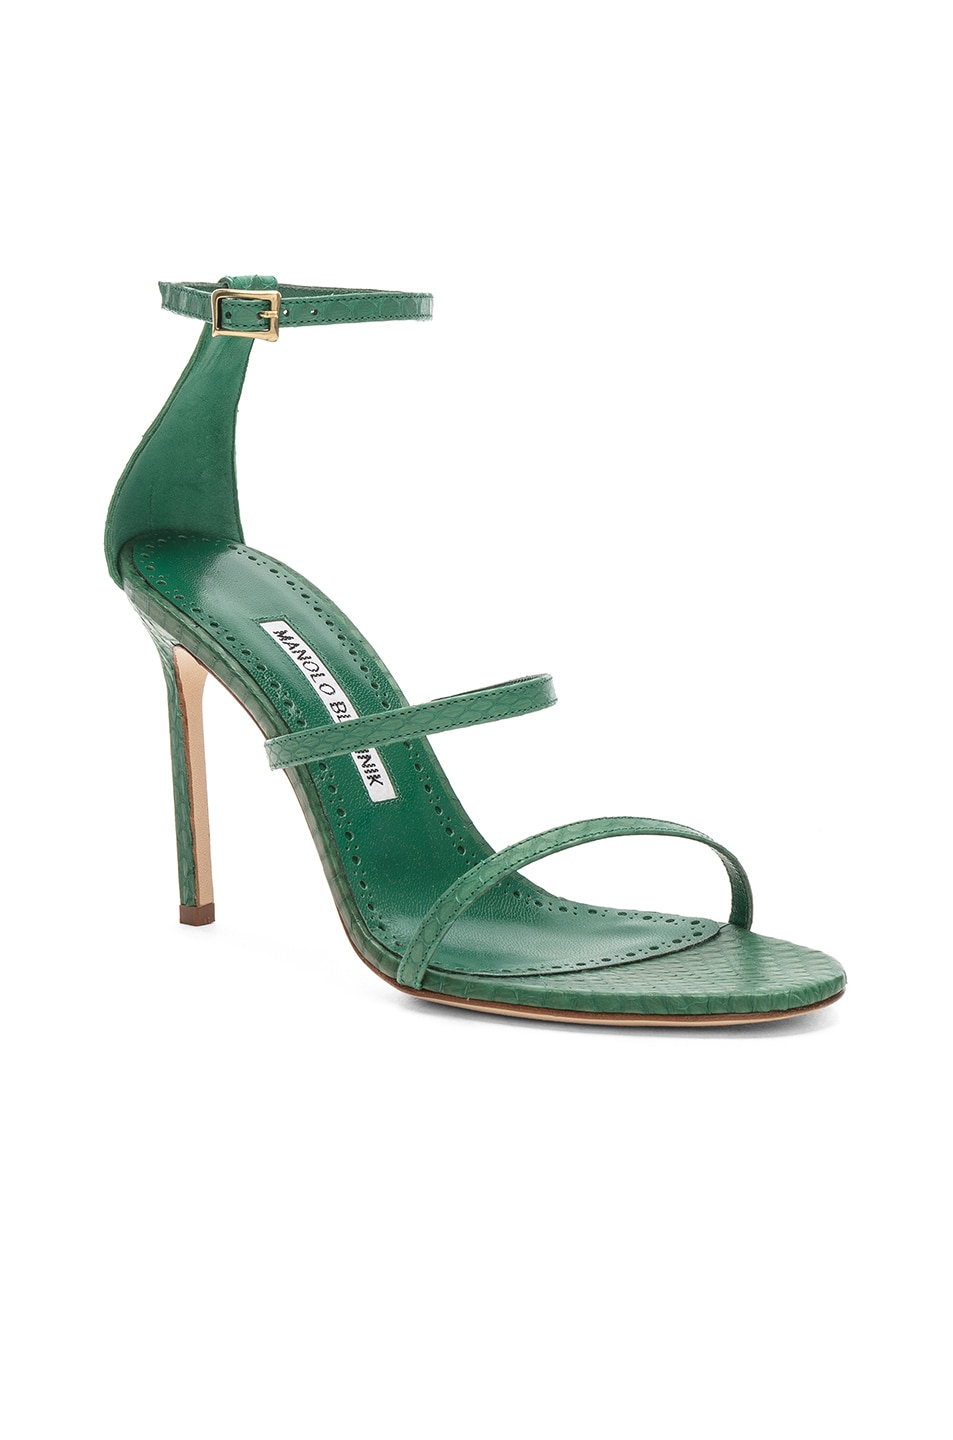 Image 2 of Manolo Blahnik Piona Matte Snake 105 Heel in Green